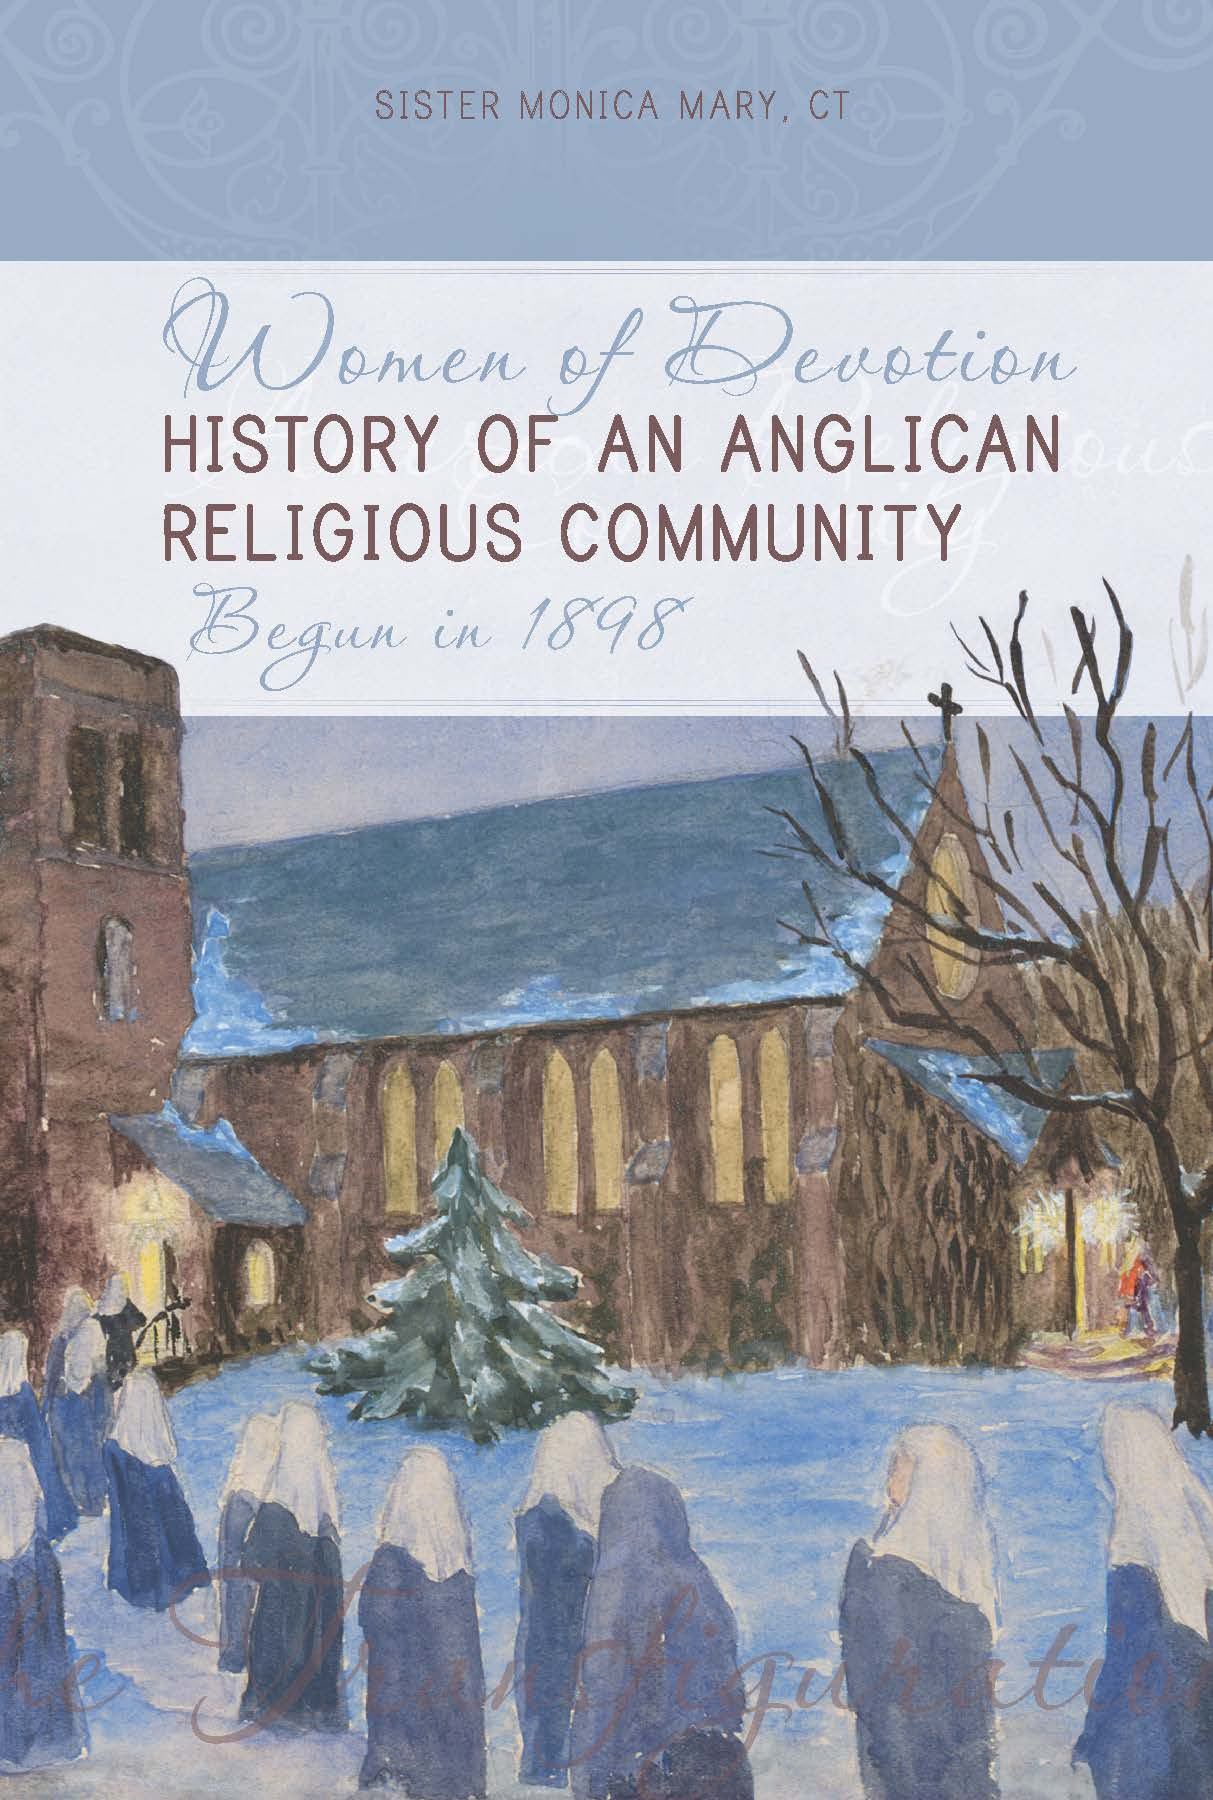 Women of Devotion: History of an Anglican Religious Community